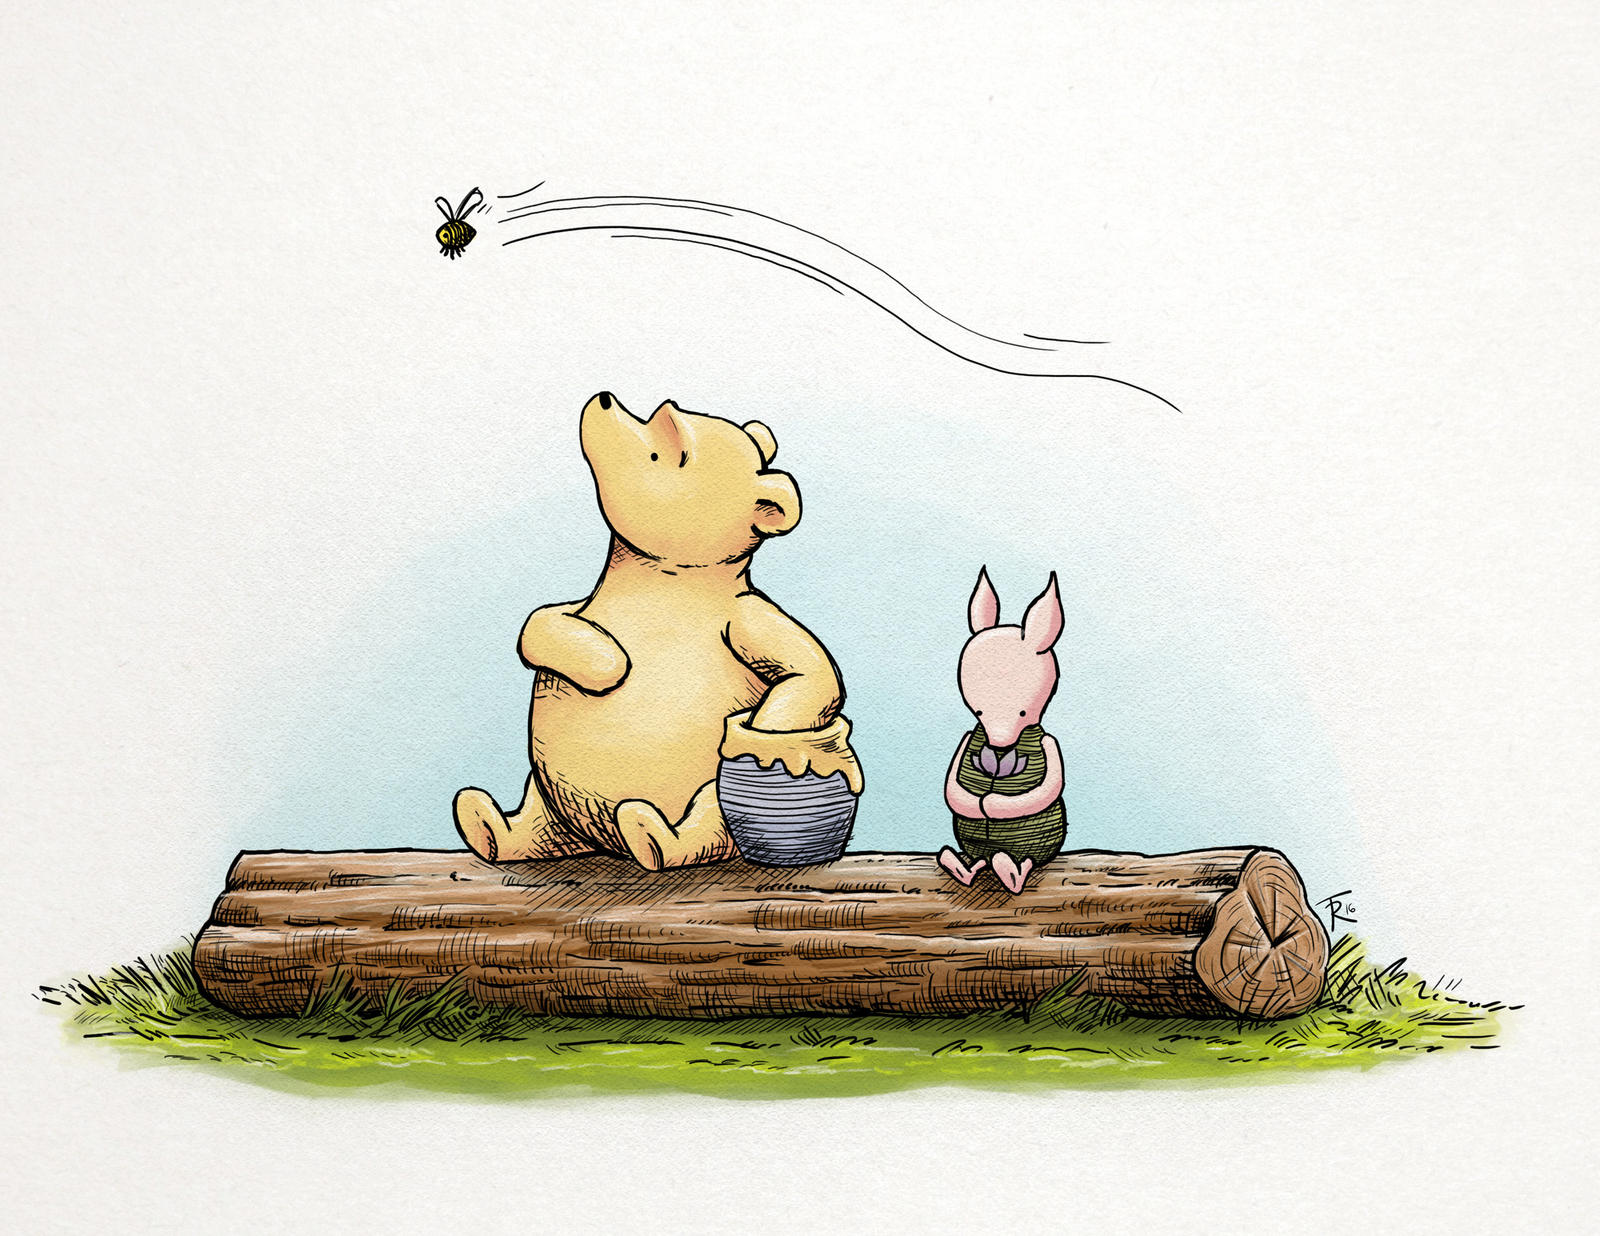 Classic Winnie The Pooh And Piglet By Sphinkrink On DeviantArt